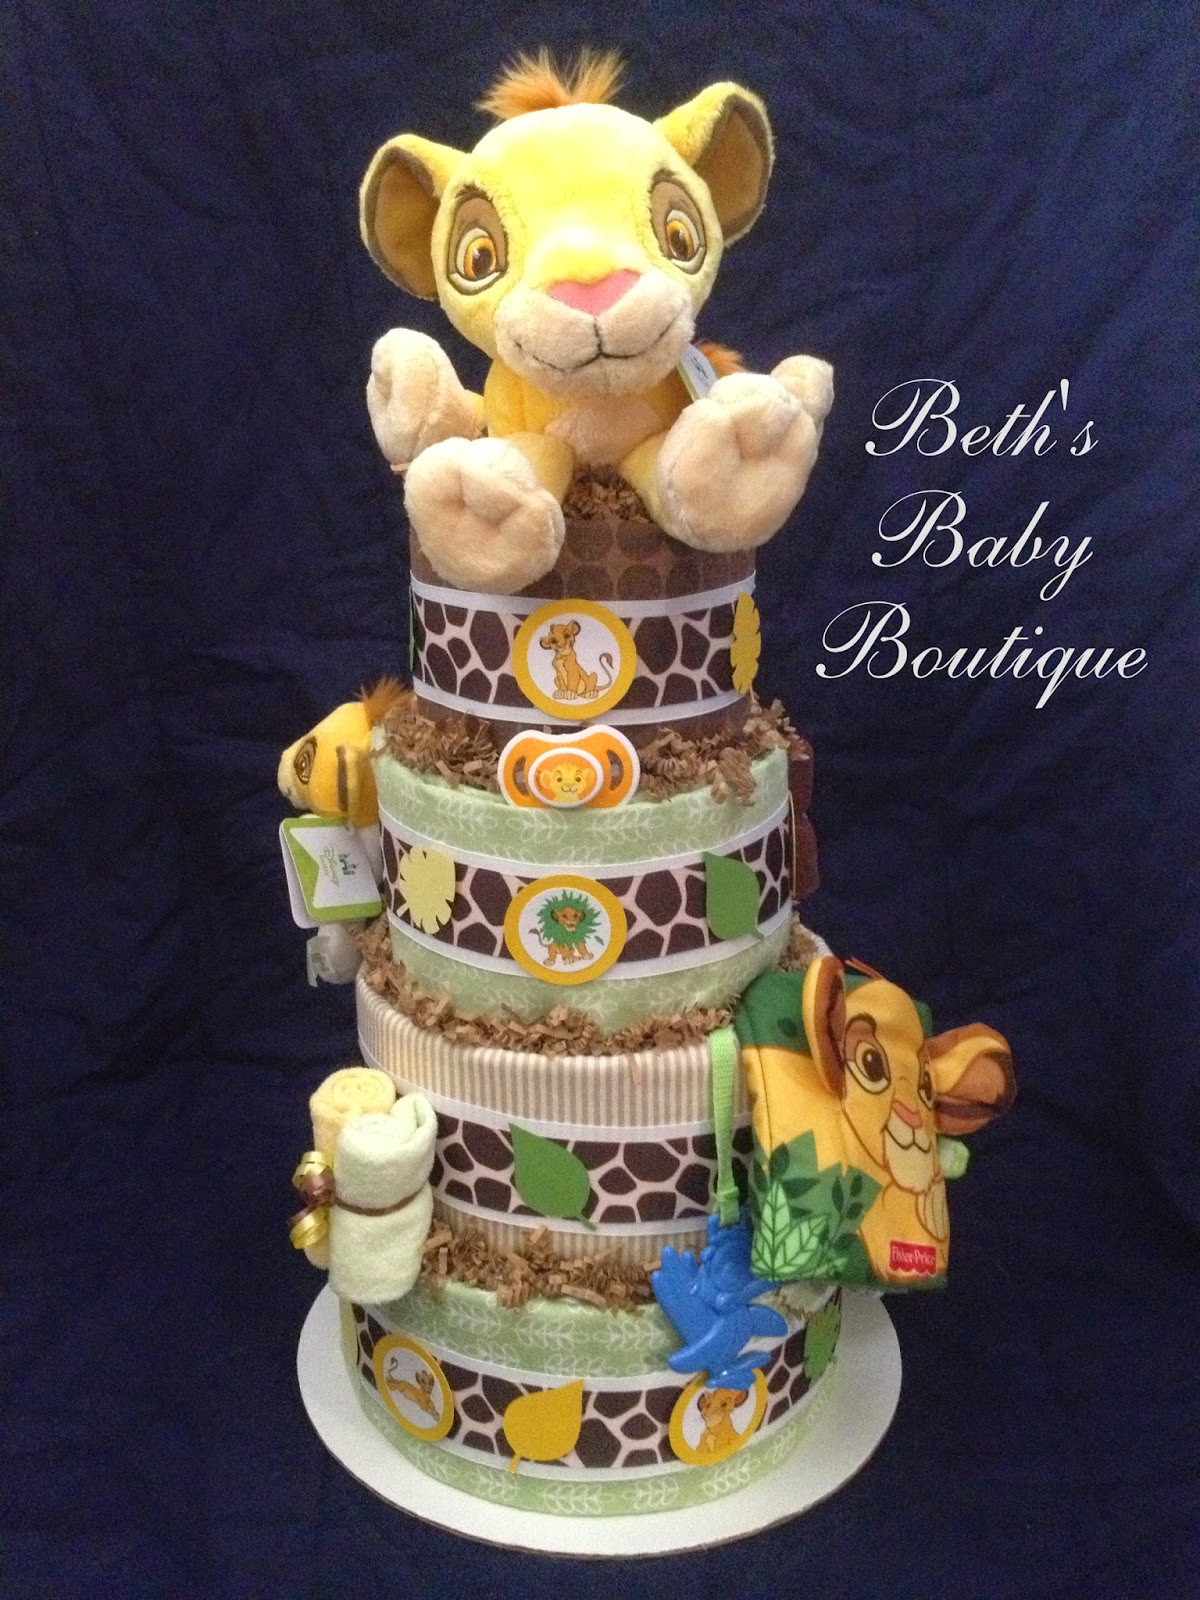 For This Cake I Opted To Create A More Neutral Base That Was Reminiscent Of The Lion King Baby Items Were Widely Available